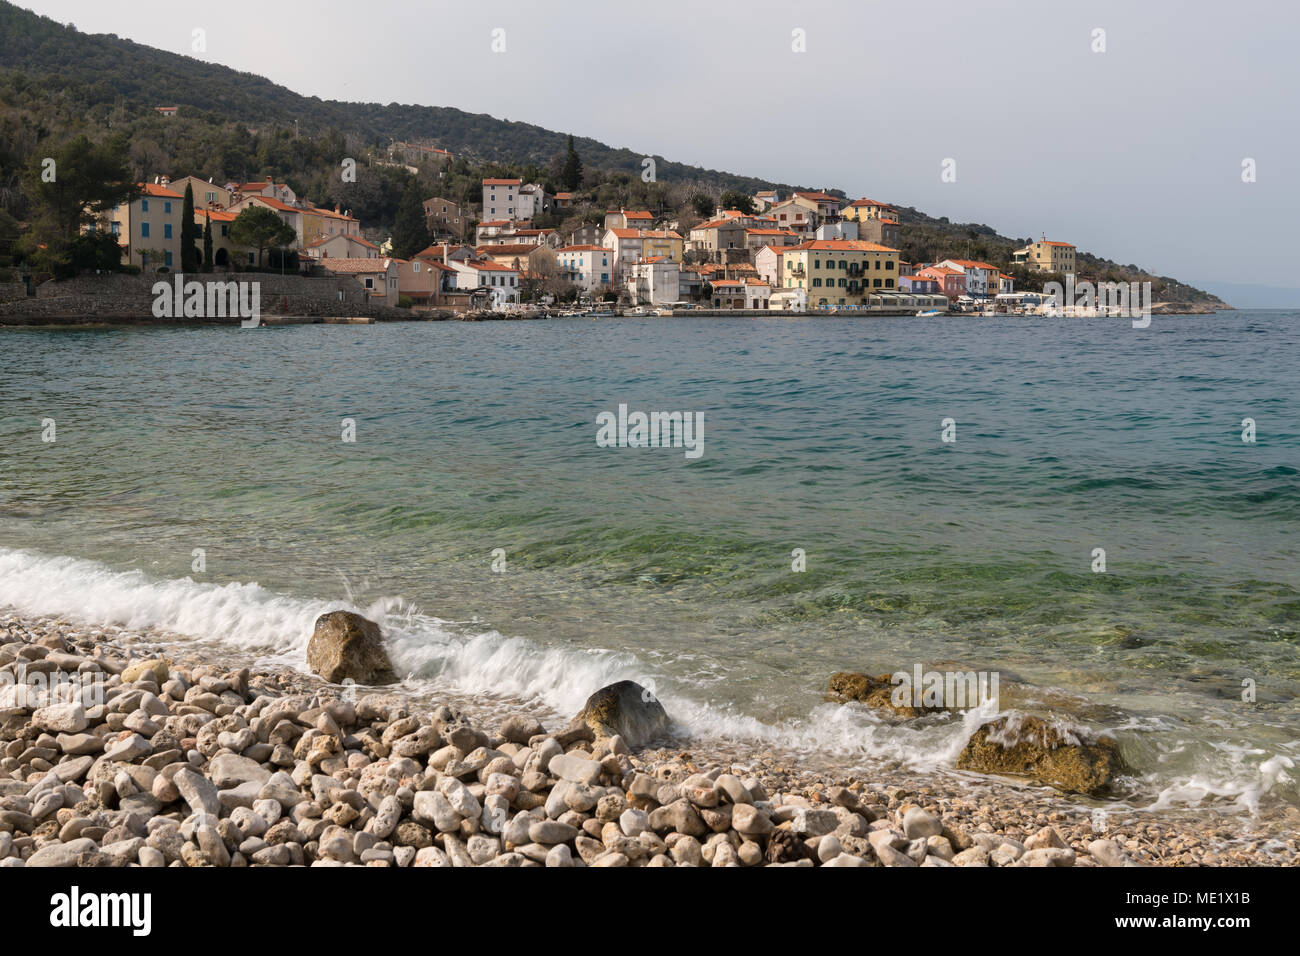 The beach of Valun (Island Cres, Croatia) on a cloudy day in spring Stock Photo